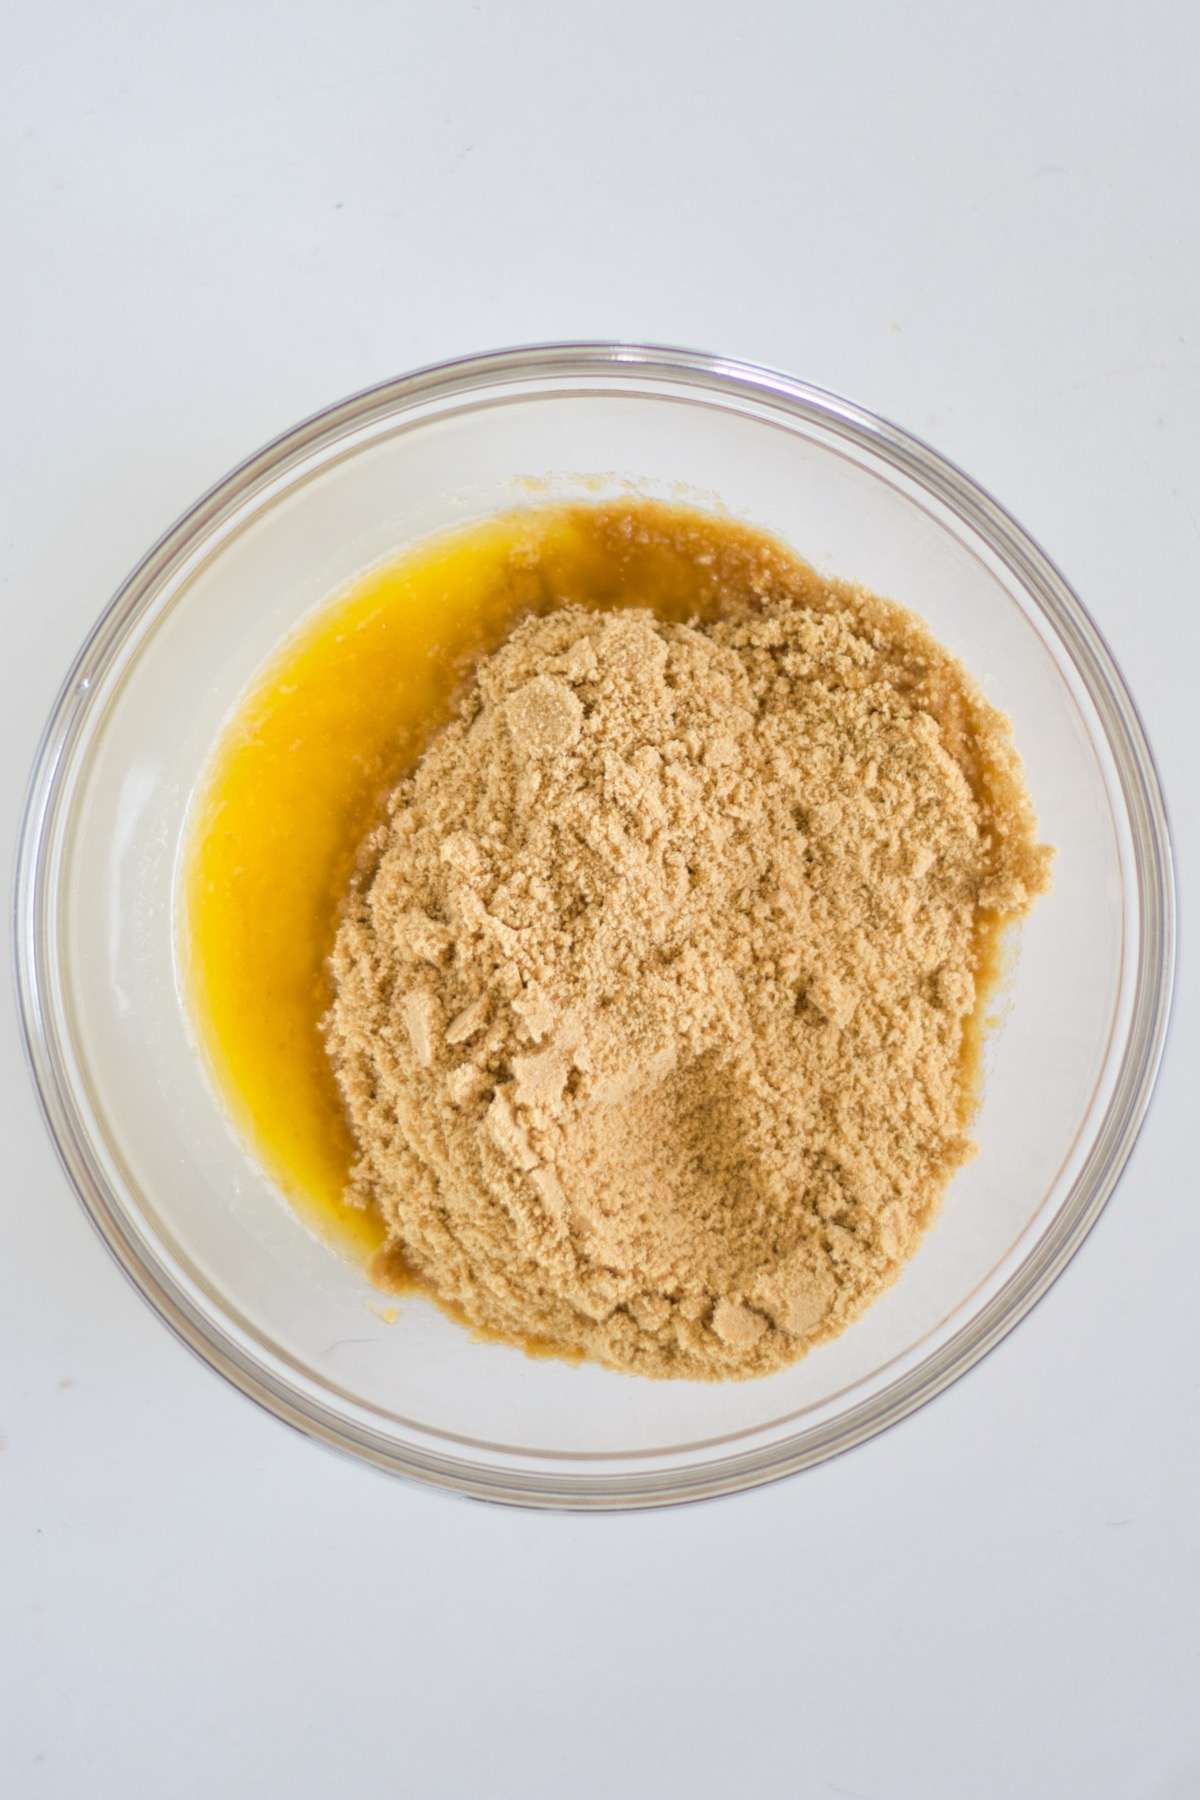 blend the cookie crumbs and the butter to make a crust